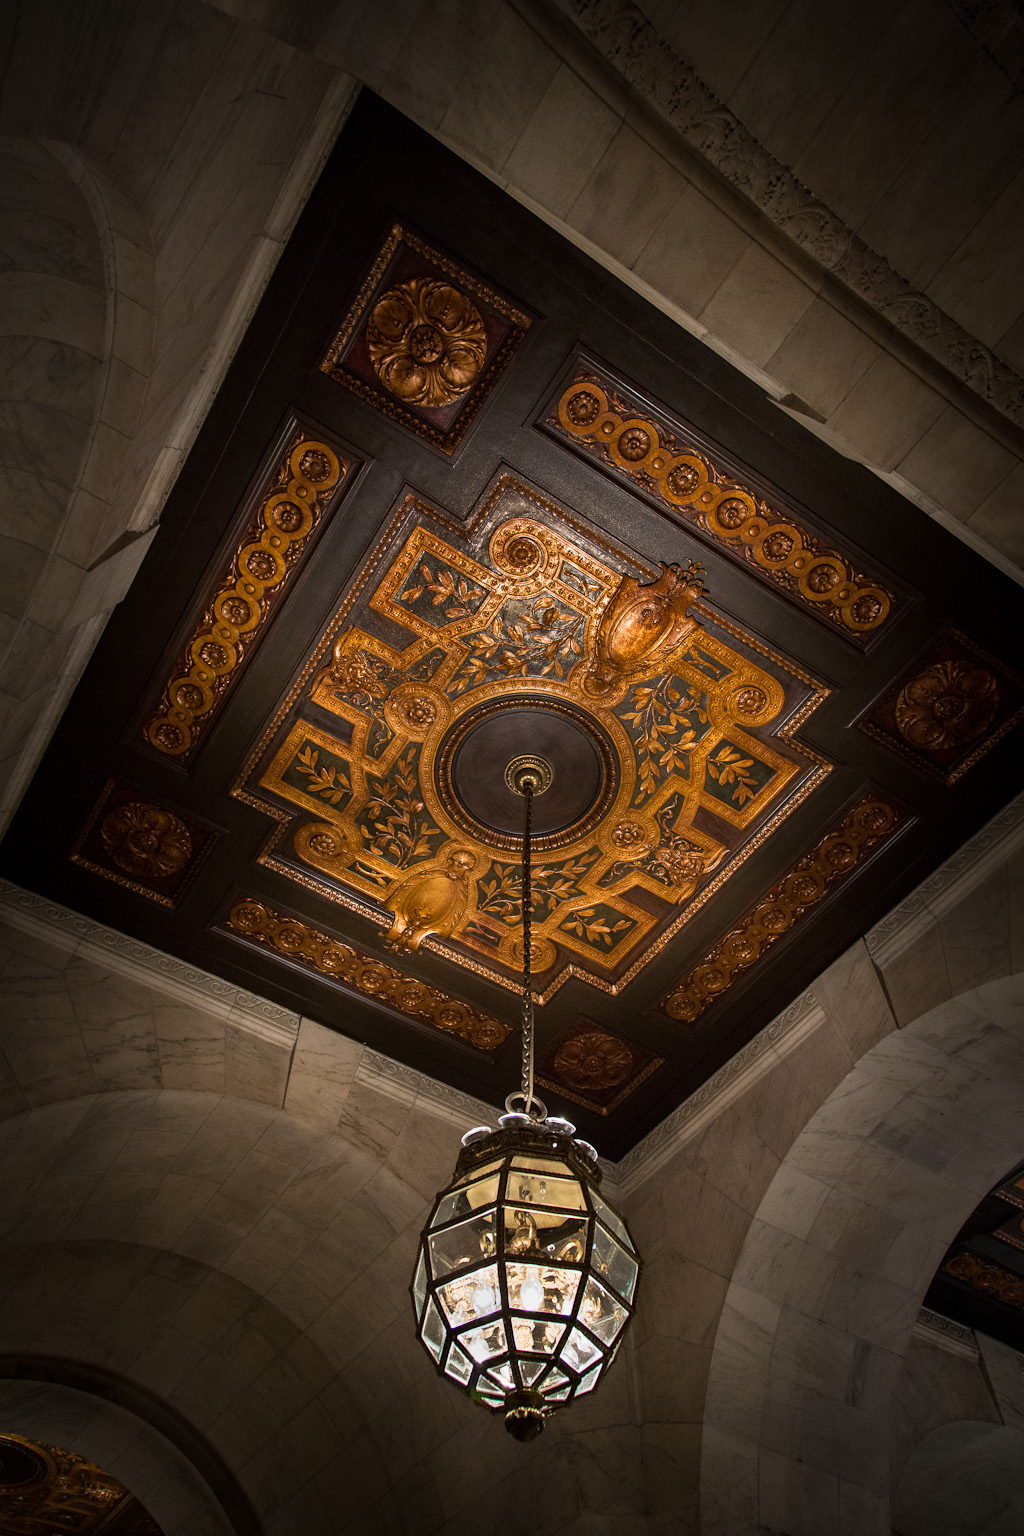 Chandelier – New York Public Library